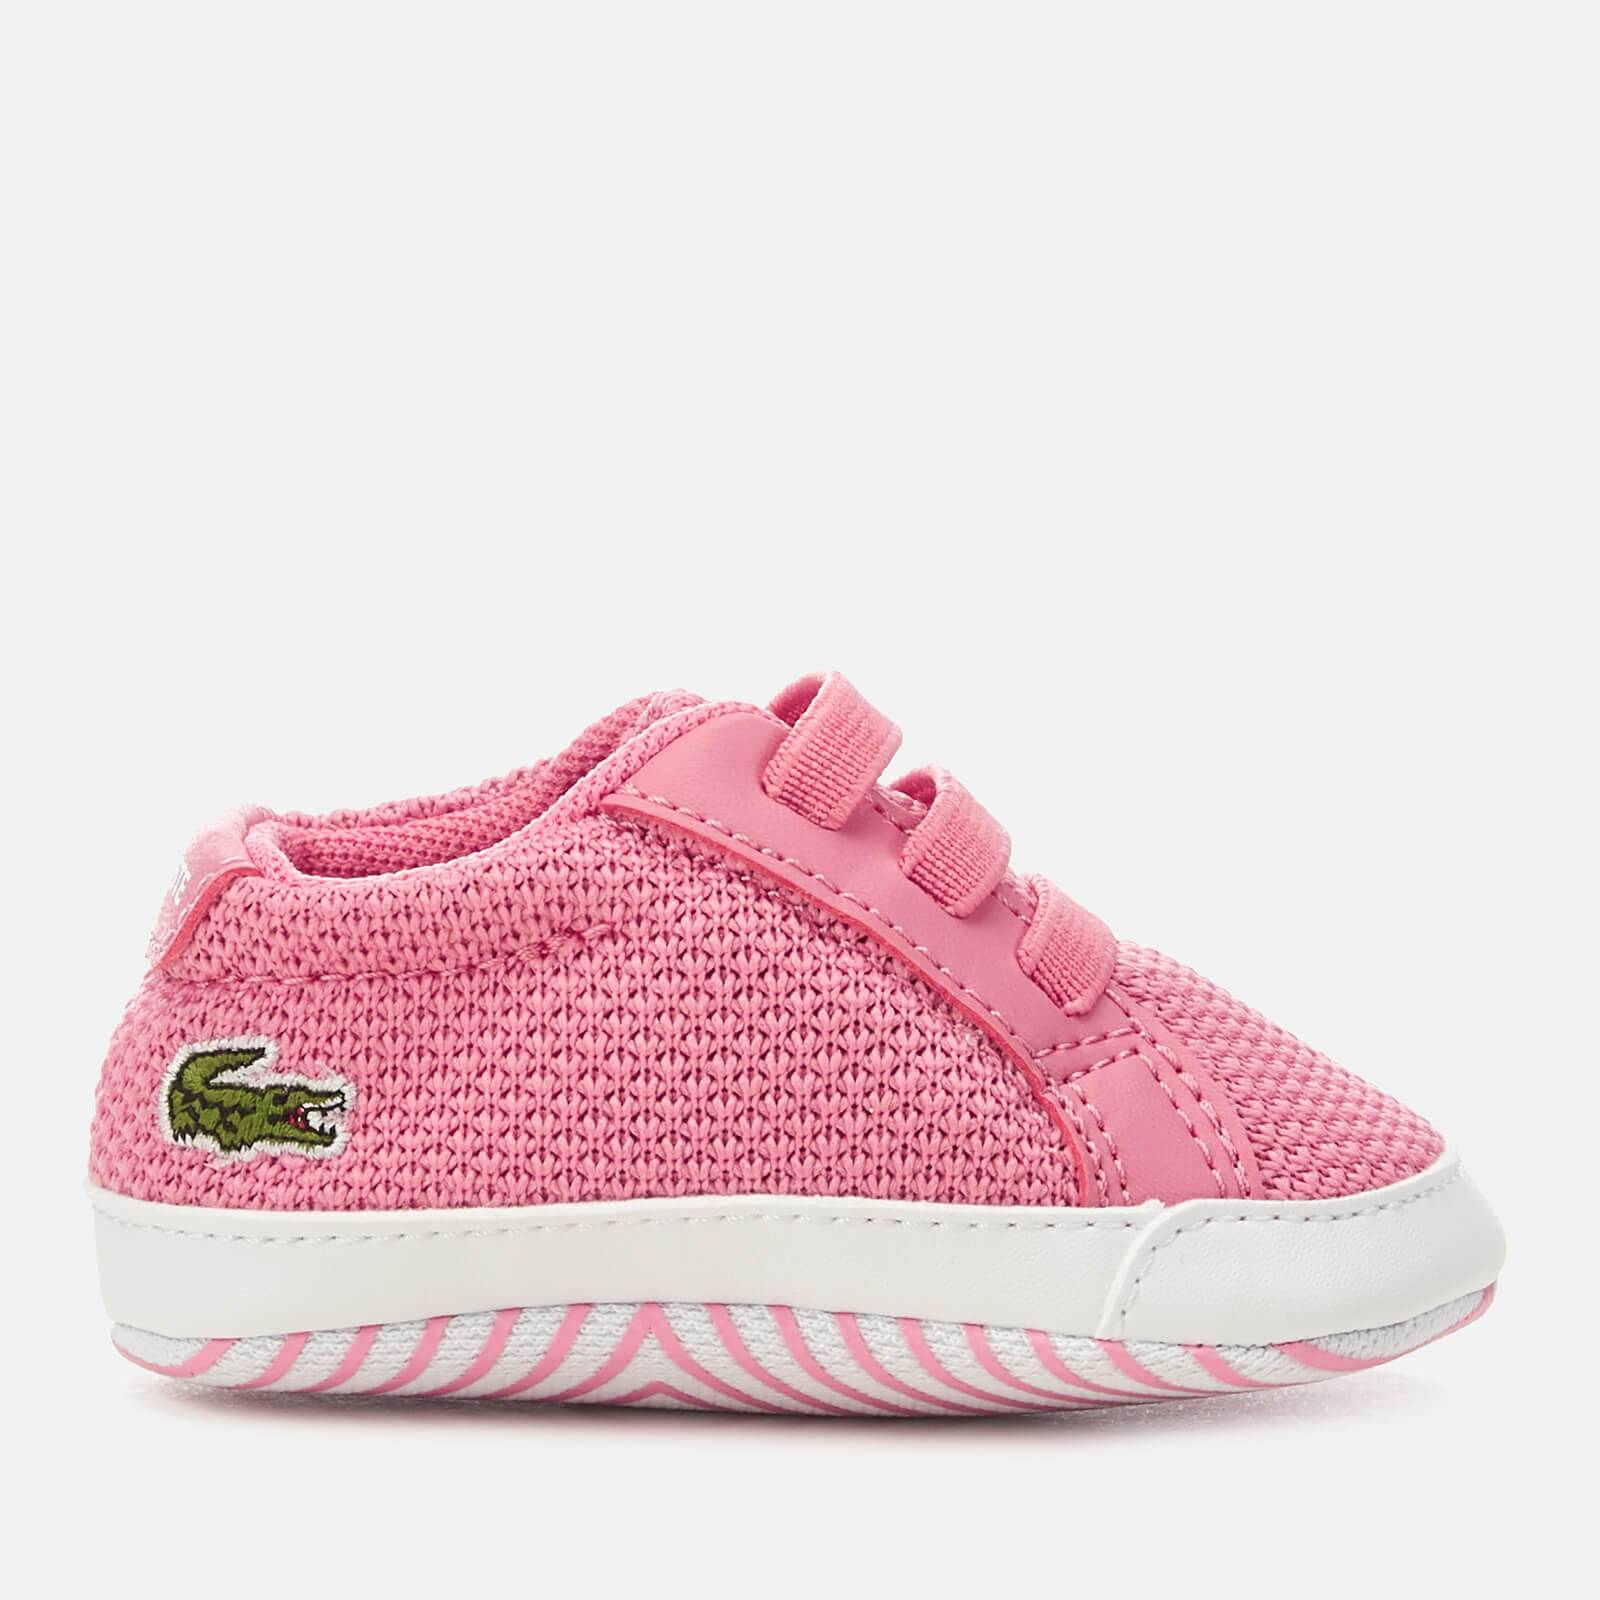 Lacoste Babies' L.12.12 Crib 318 1 Trainers - Pink/White - UK 3 Baby - Pink